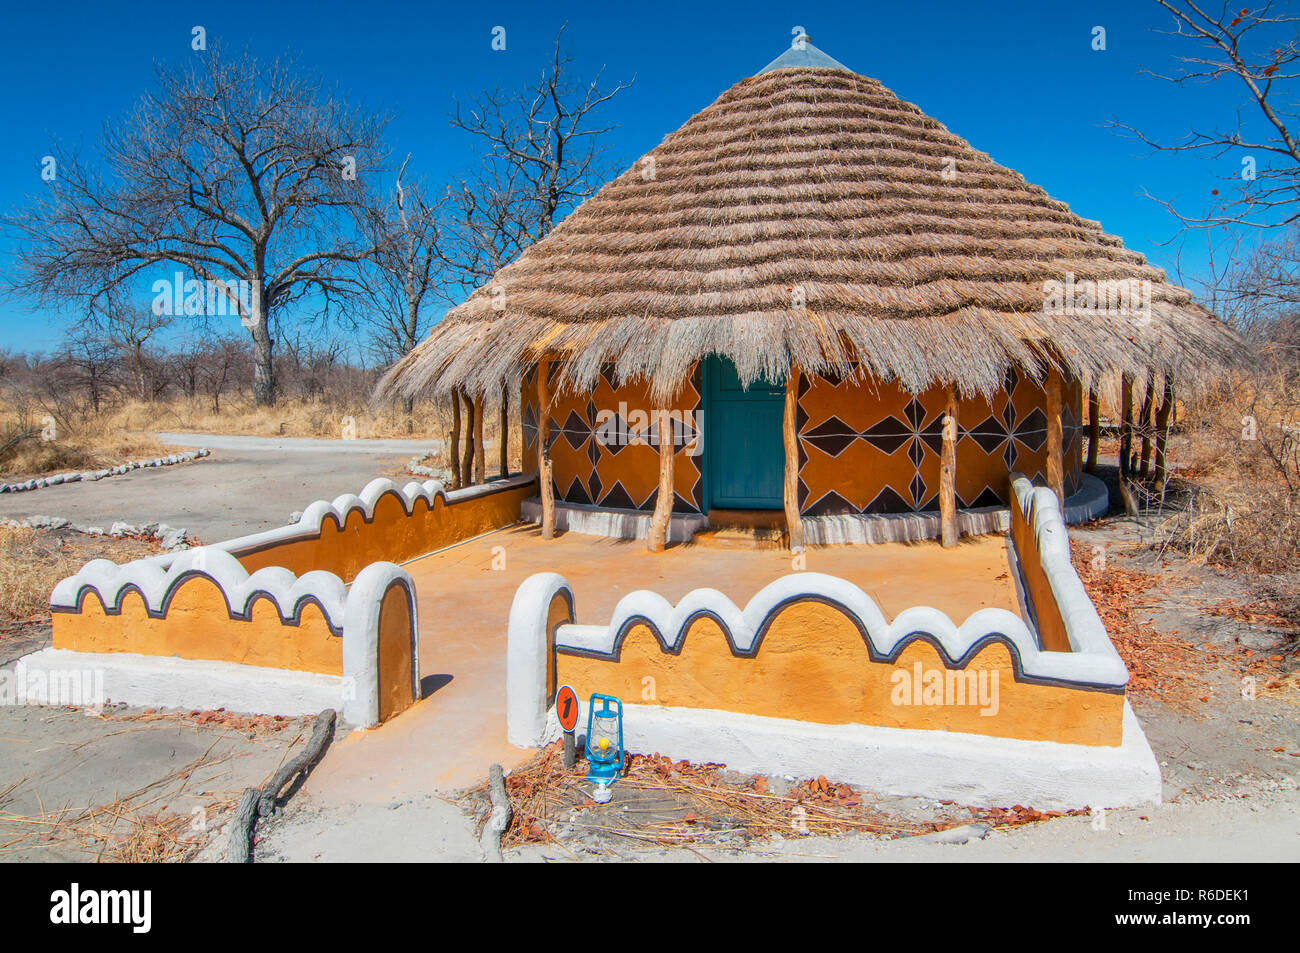 Traditional Hut Accommodation At Planet Baobabin Botswana, Africa Stock Photo